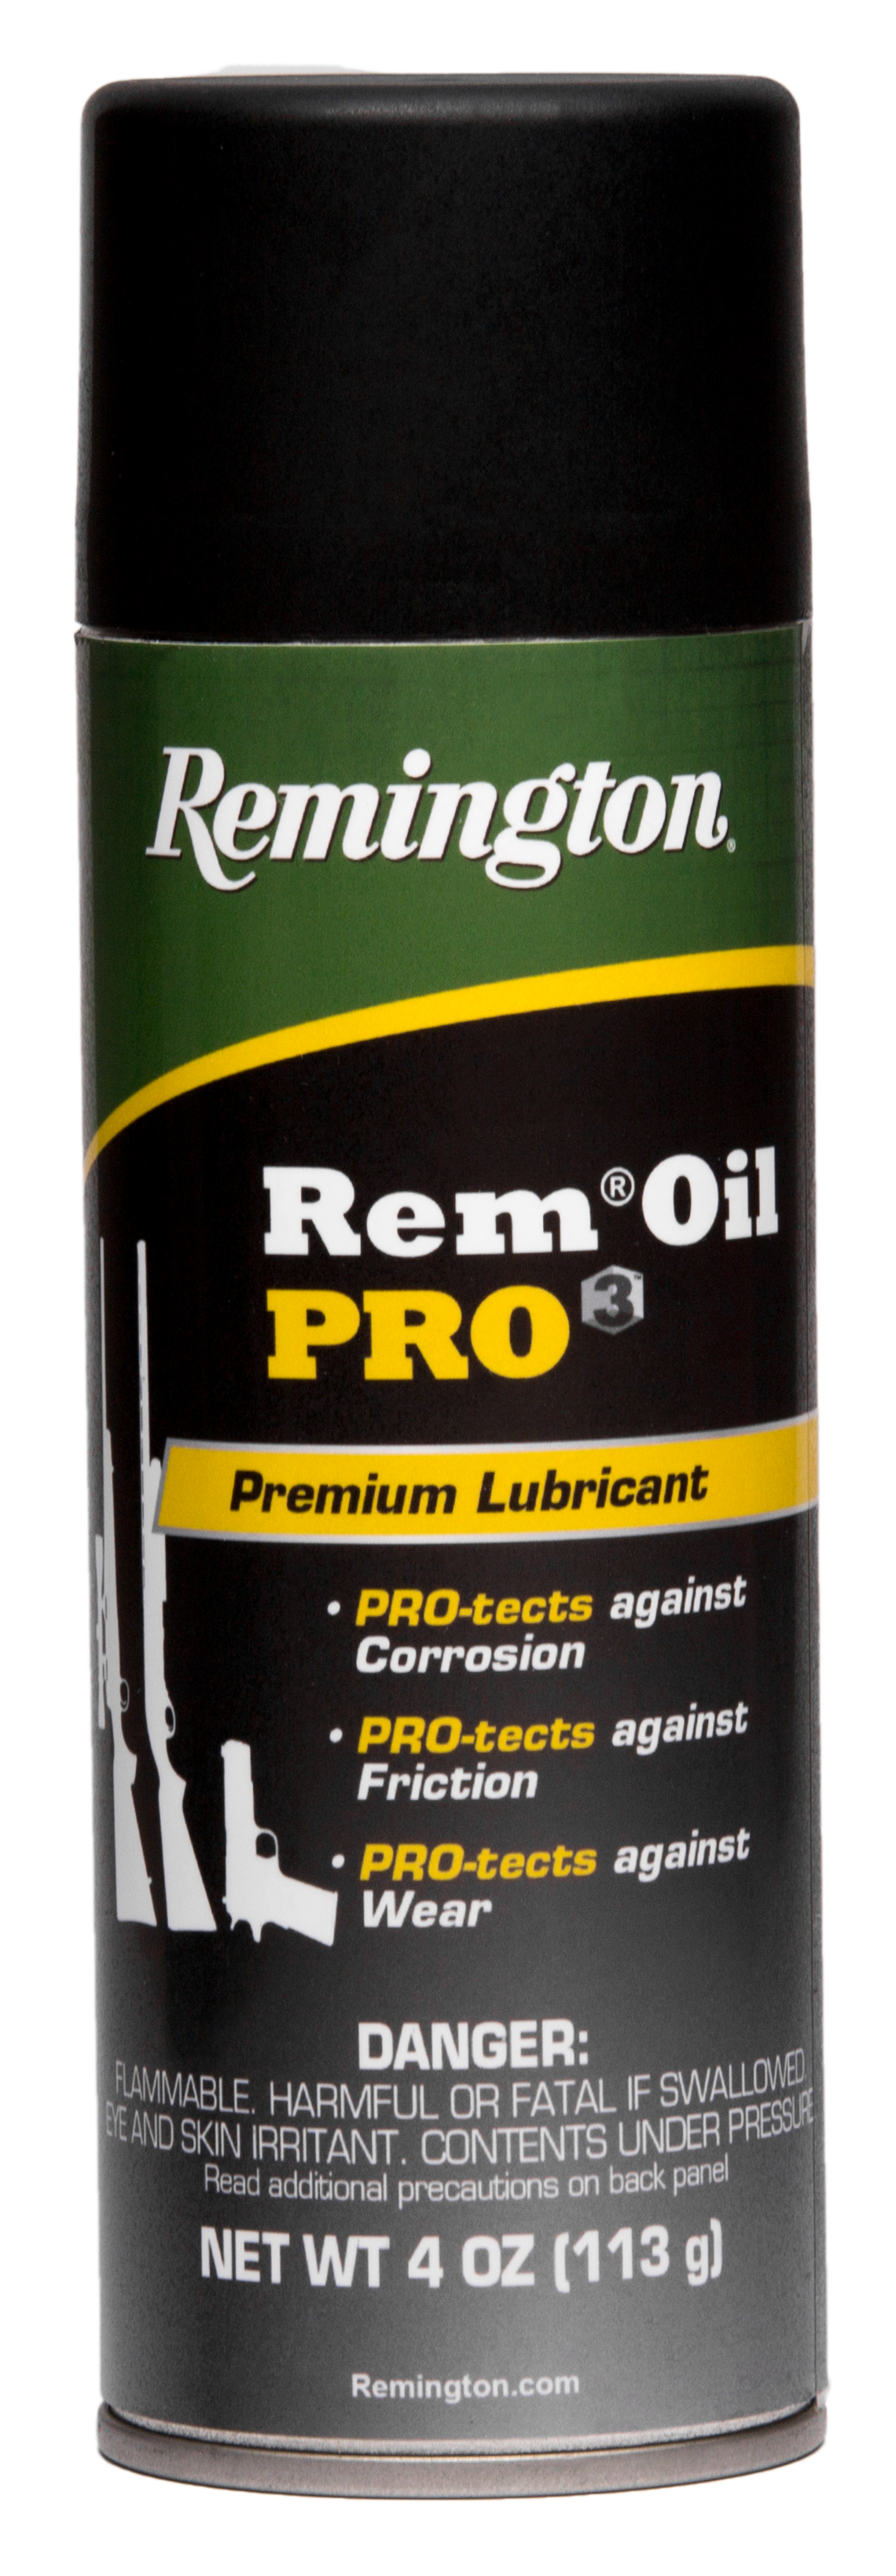 Remington Accessories 18918 Rem Oil Pro3 Lubricant/Protectant 4 oz